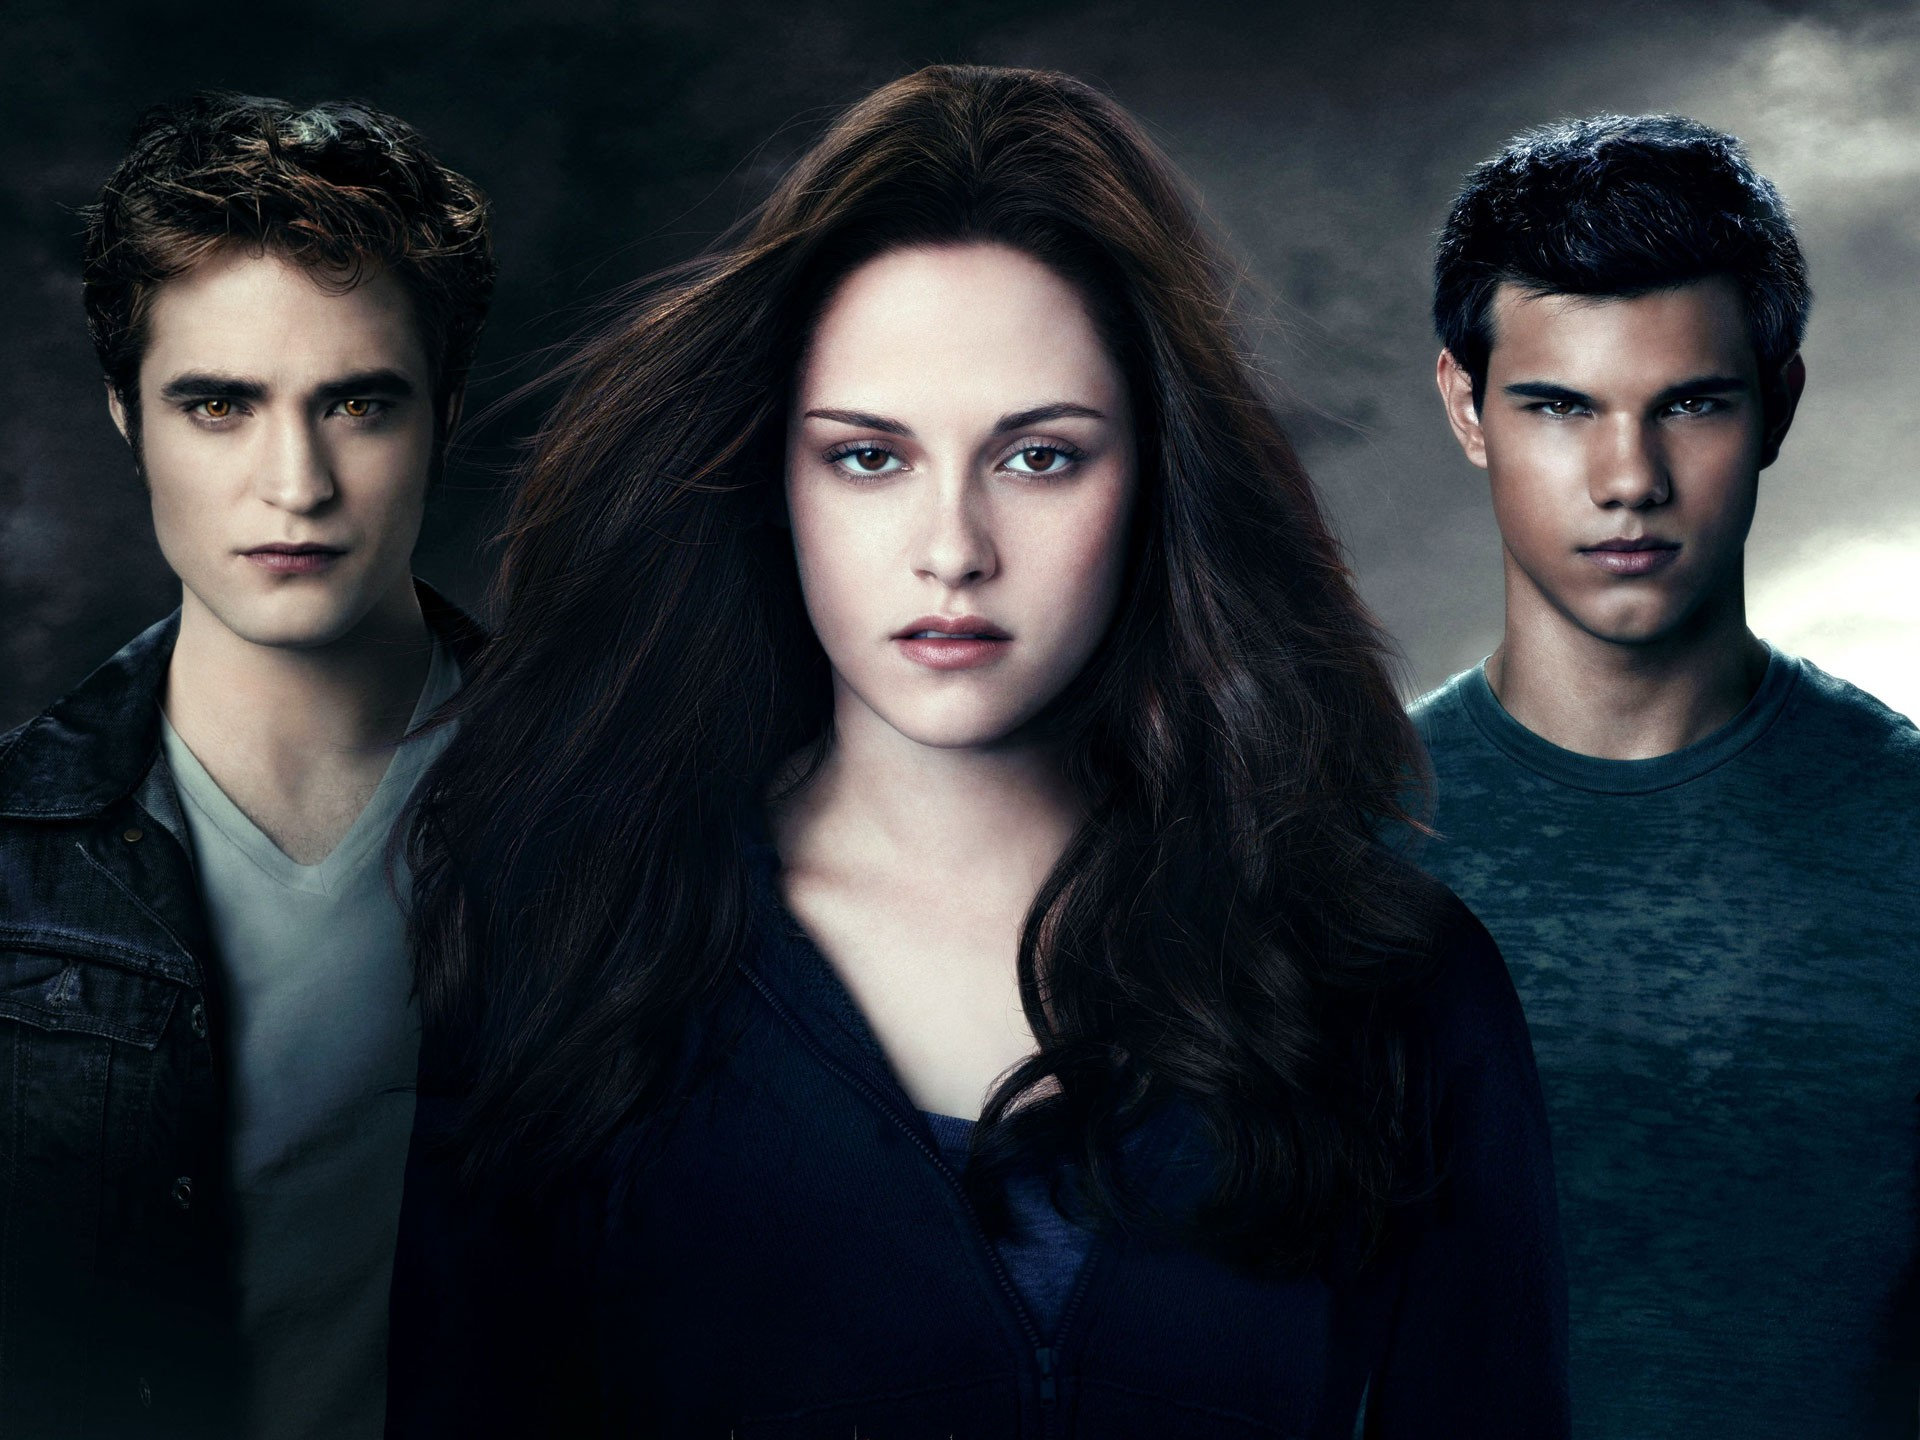 Twilight Eclipse New Official Poster 731.94 Kb